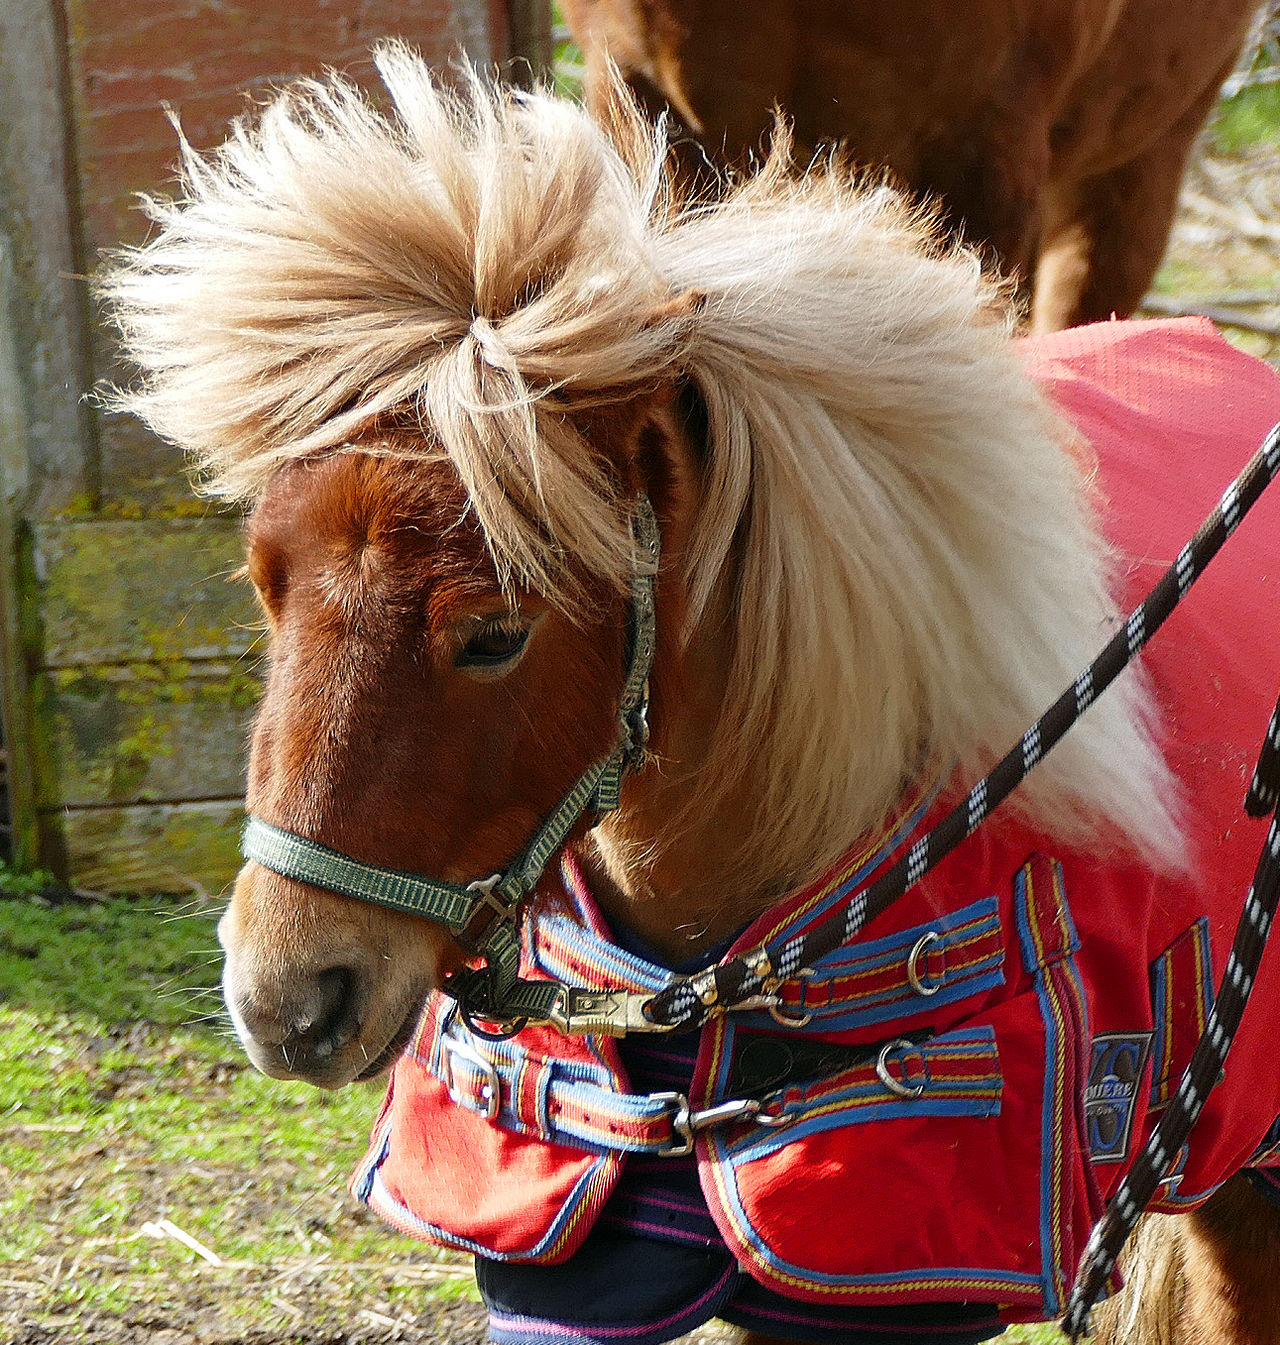 Animal Hair Animal Themes Bridle Brown Close-up Day Domestic Animals Grass Horse Livestock Mammal Mane Nature No People One Animal Outdoors Working Animal